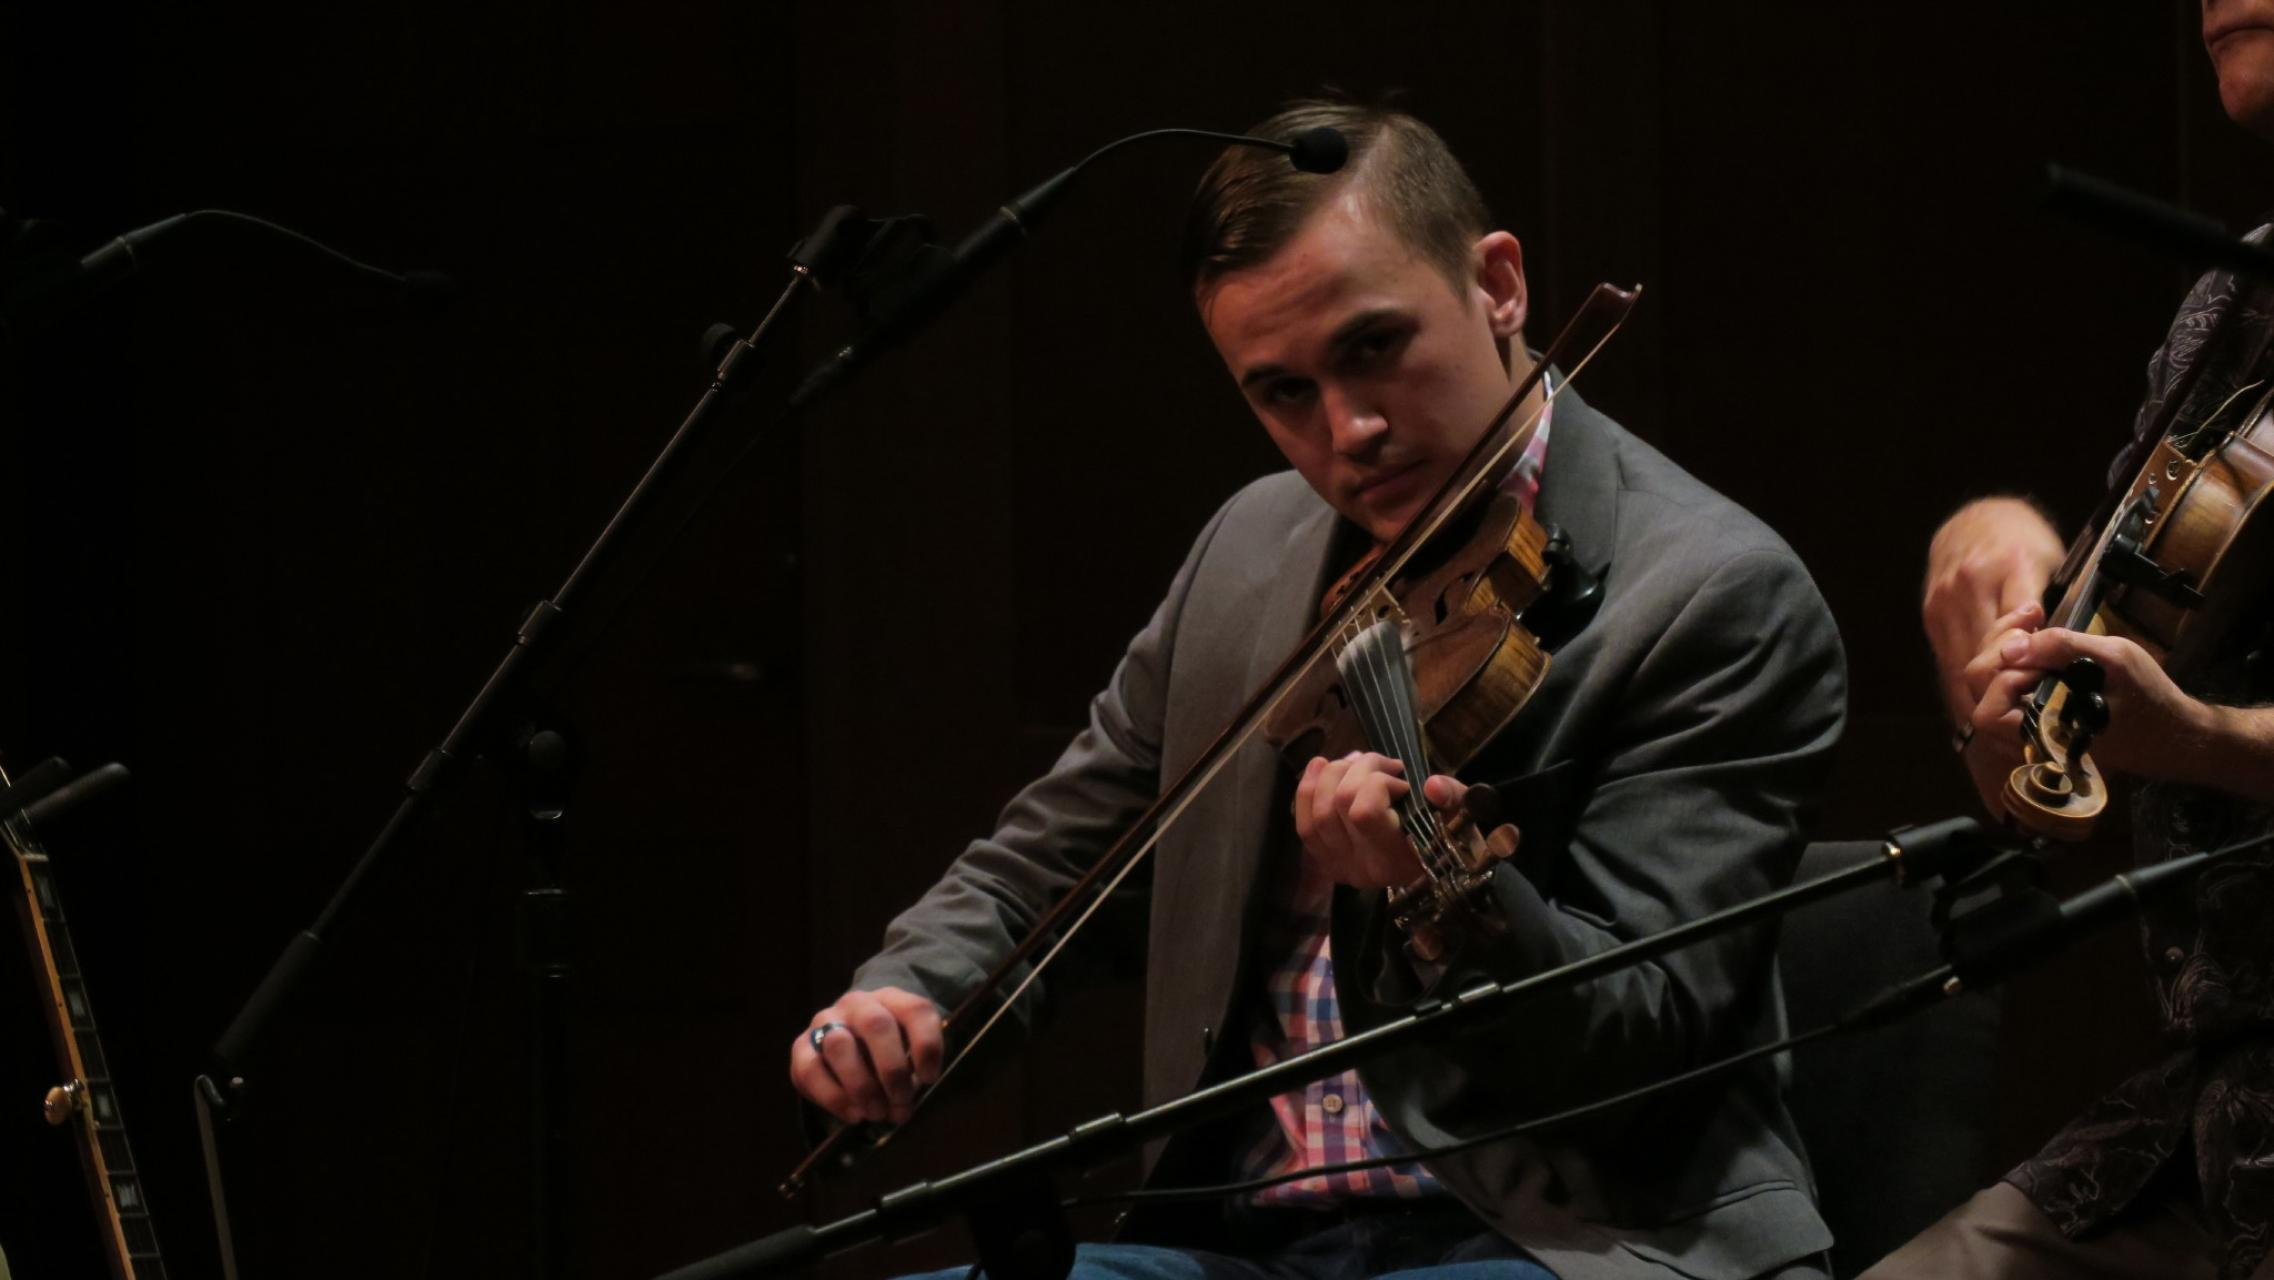 Scott Stegall playing fiddle